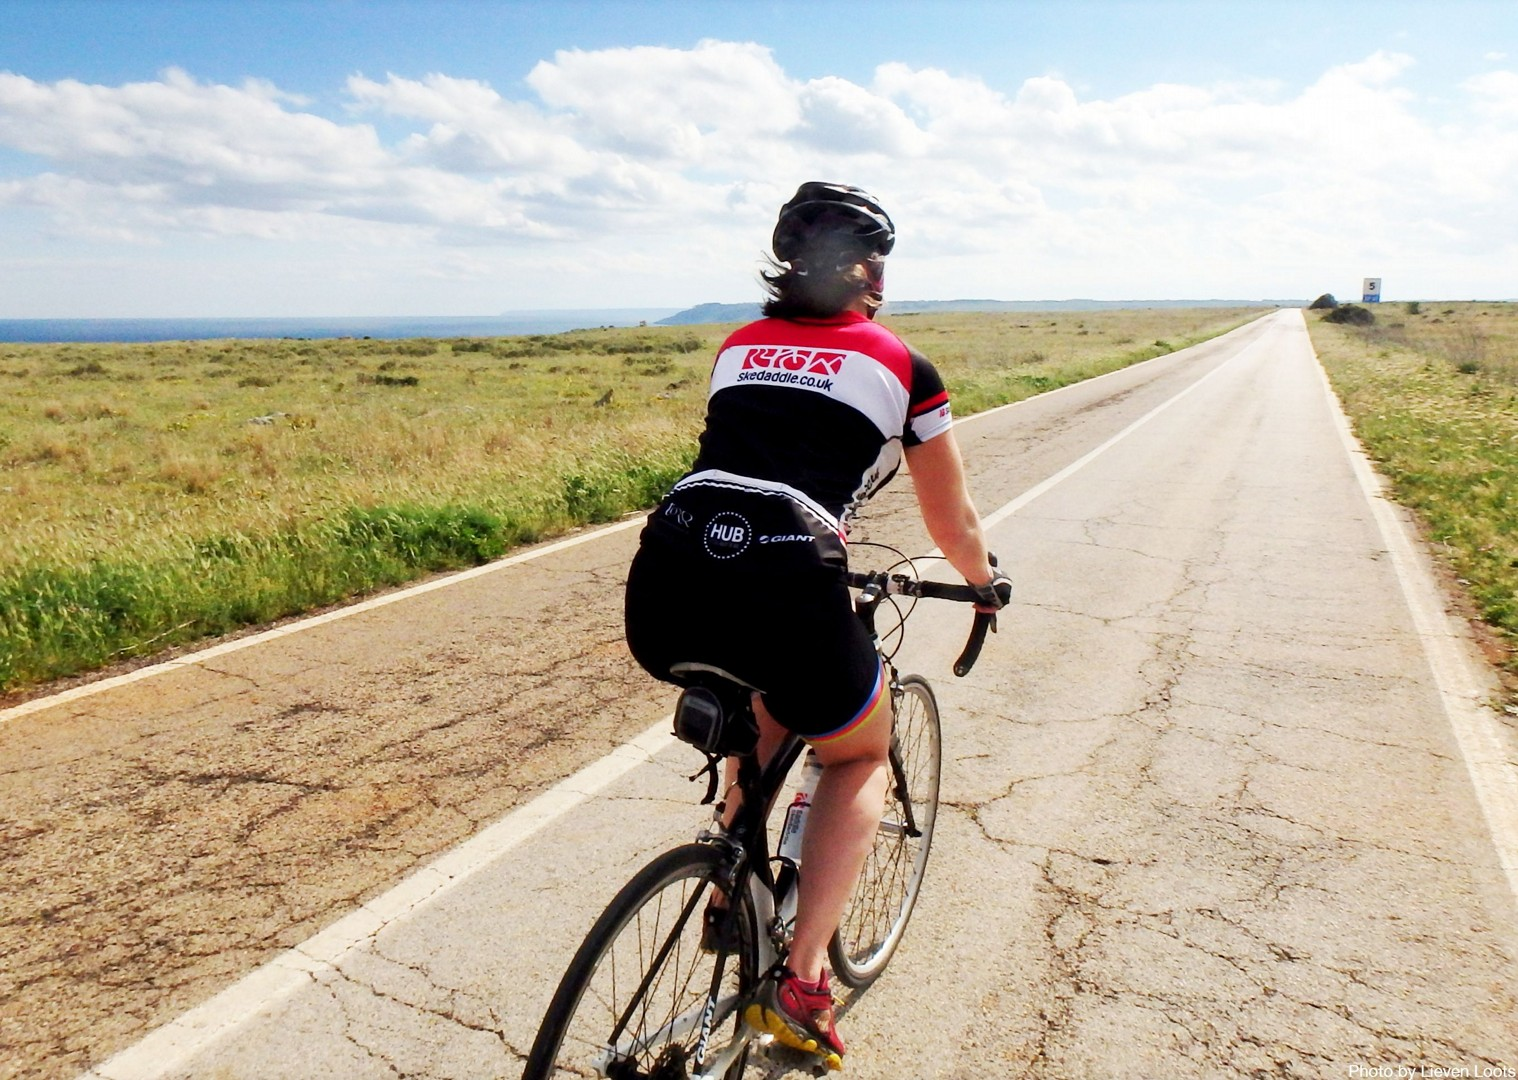 self-guided-road-cycling-holiday.jpg - Italy - Puglia - The Beautiful South - Self-Guided Road Cycling Holiday - Road Cycling